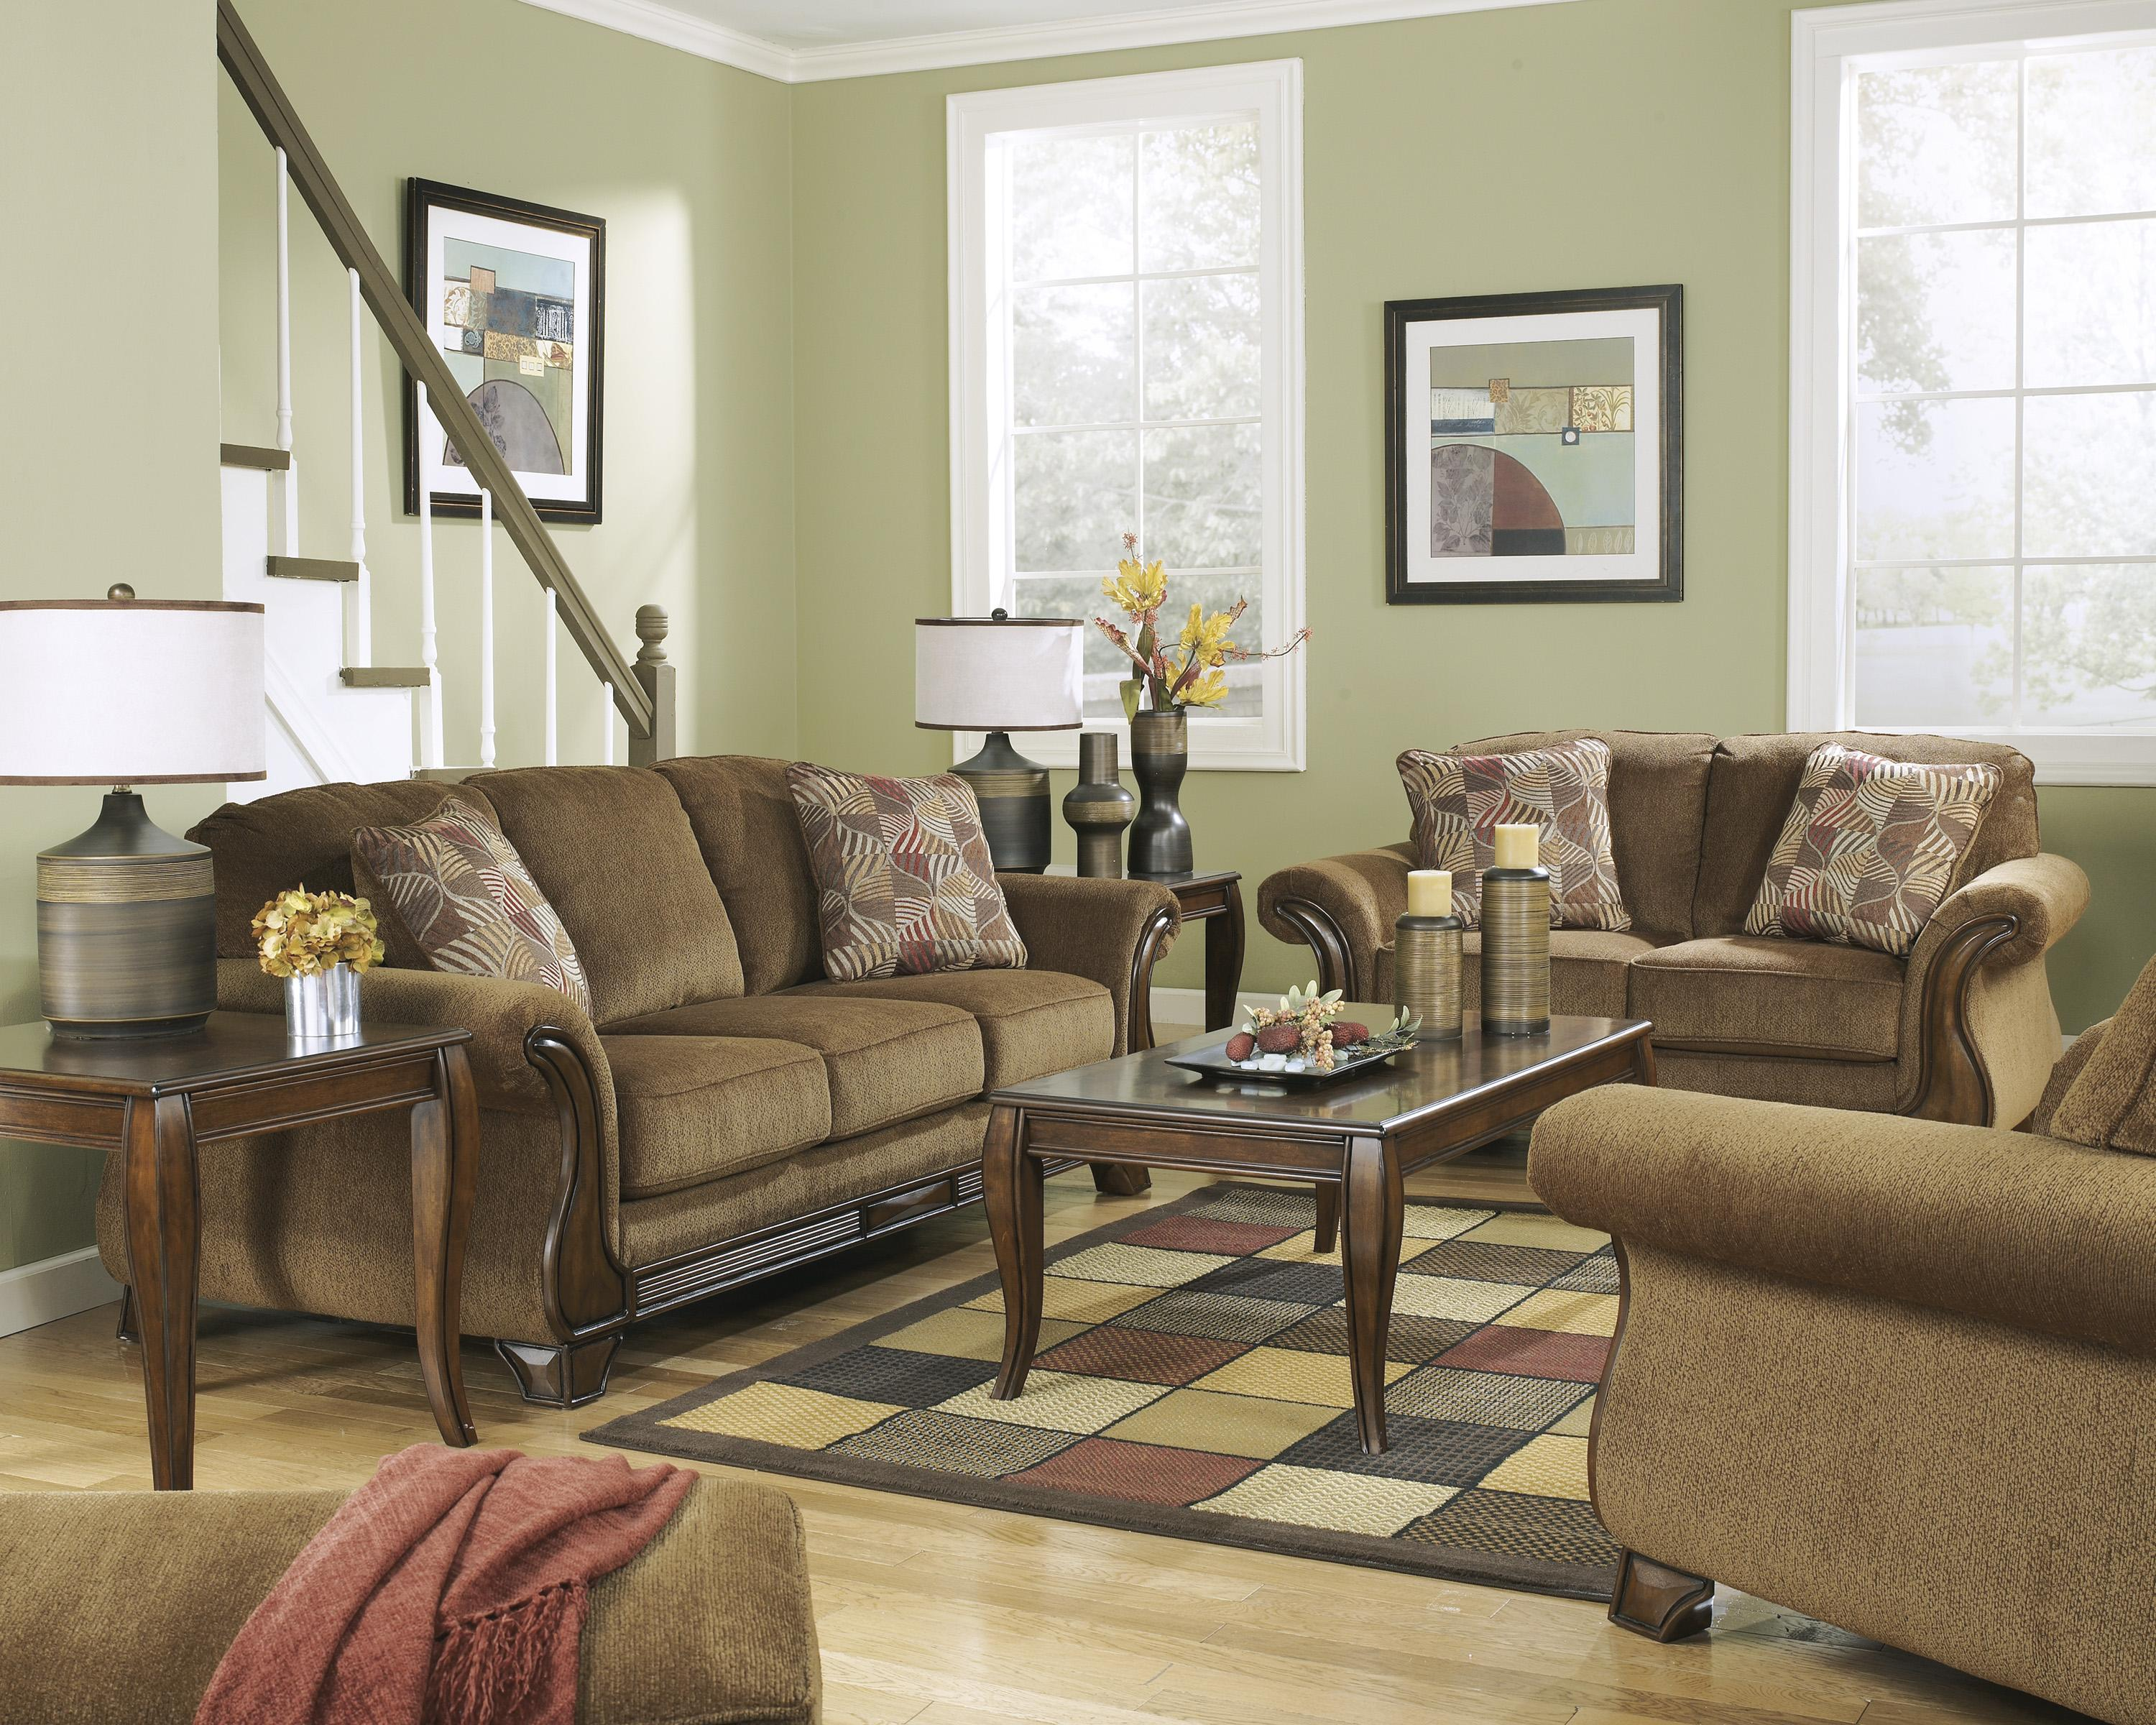 Signature Design by Ashley Montgomery - Mocha Stationary Living Room Group - Item Number: 38300 Living Room Group 4